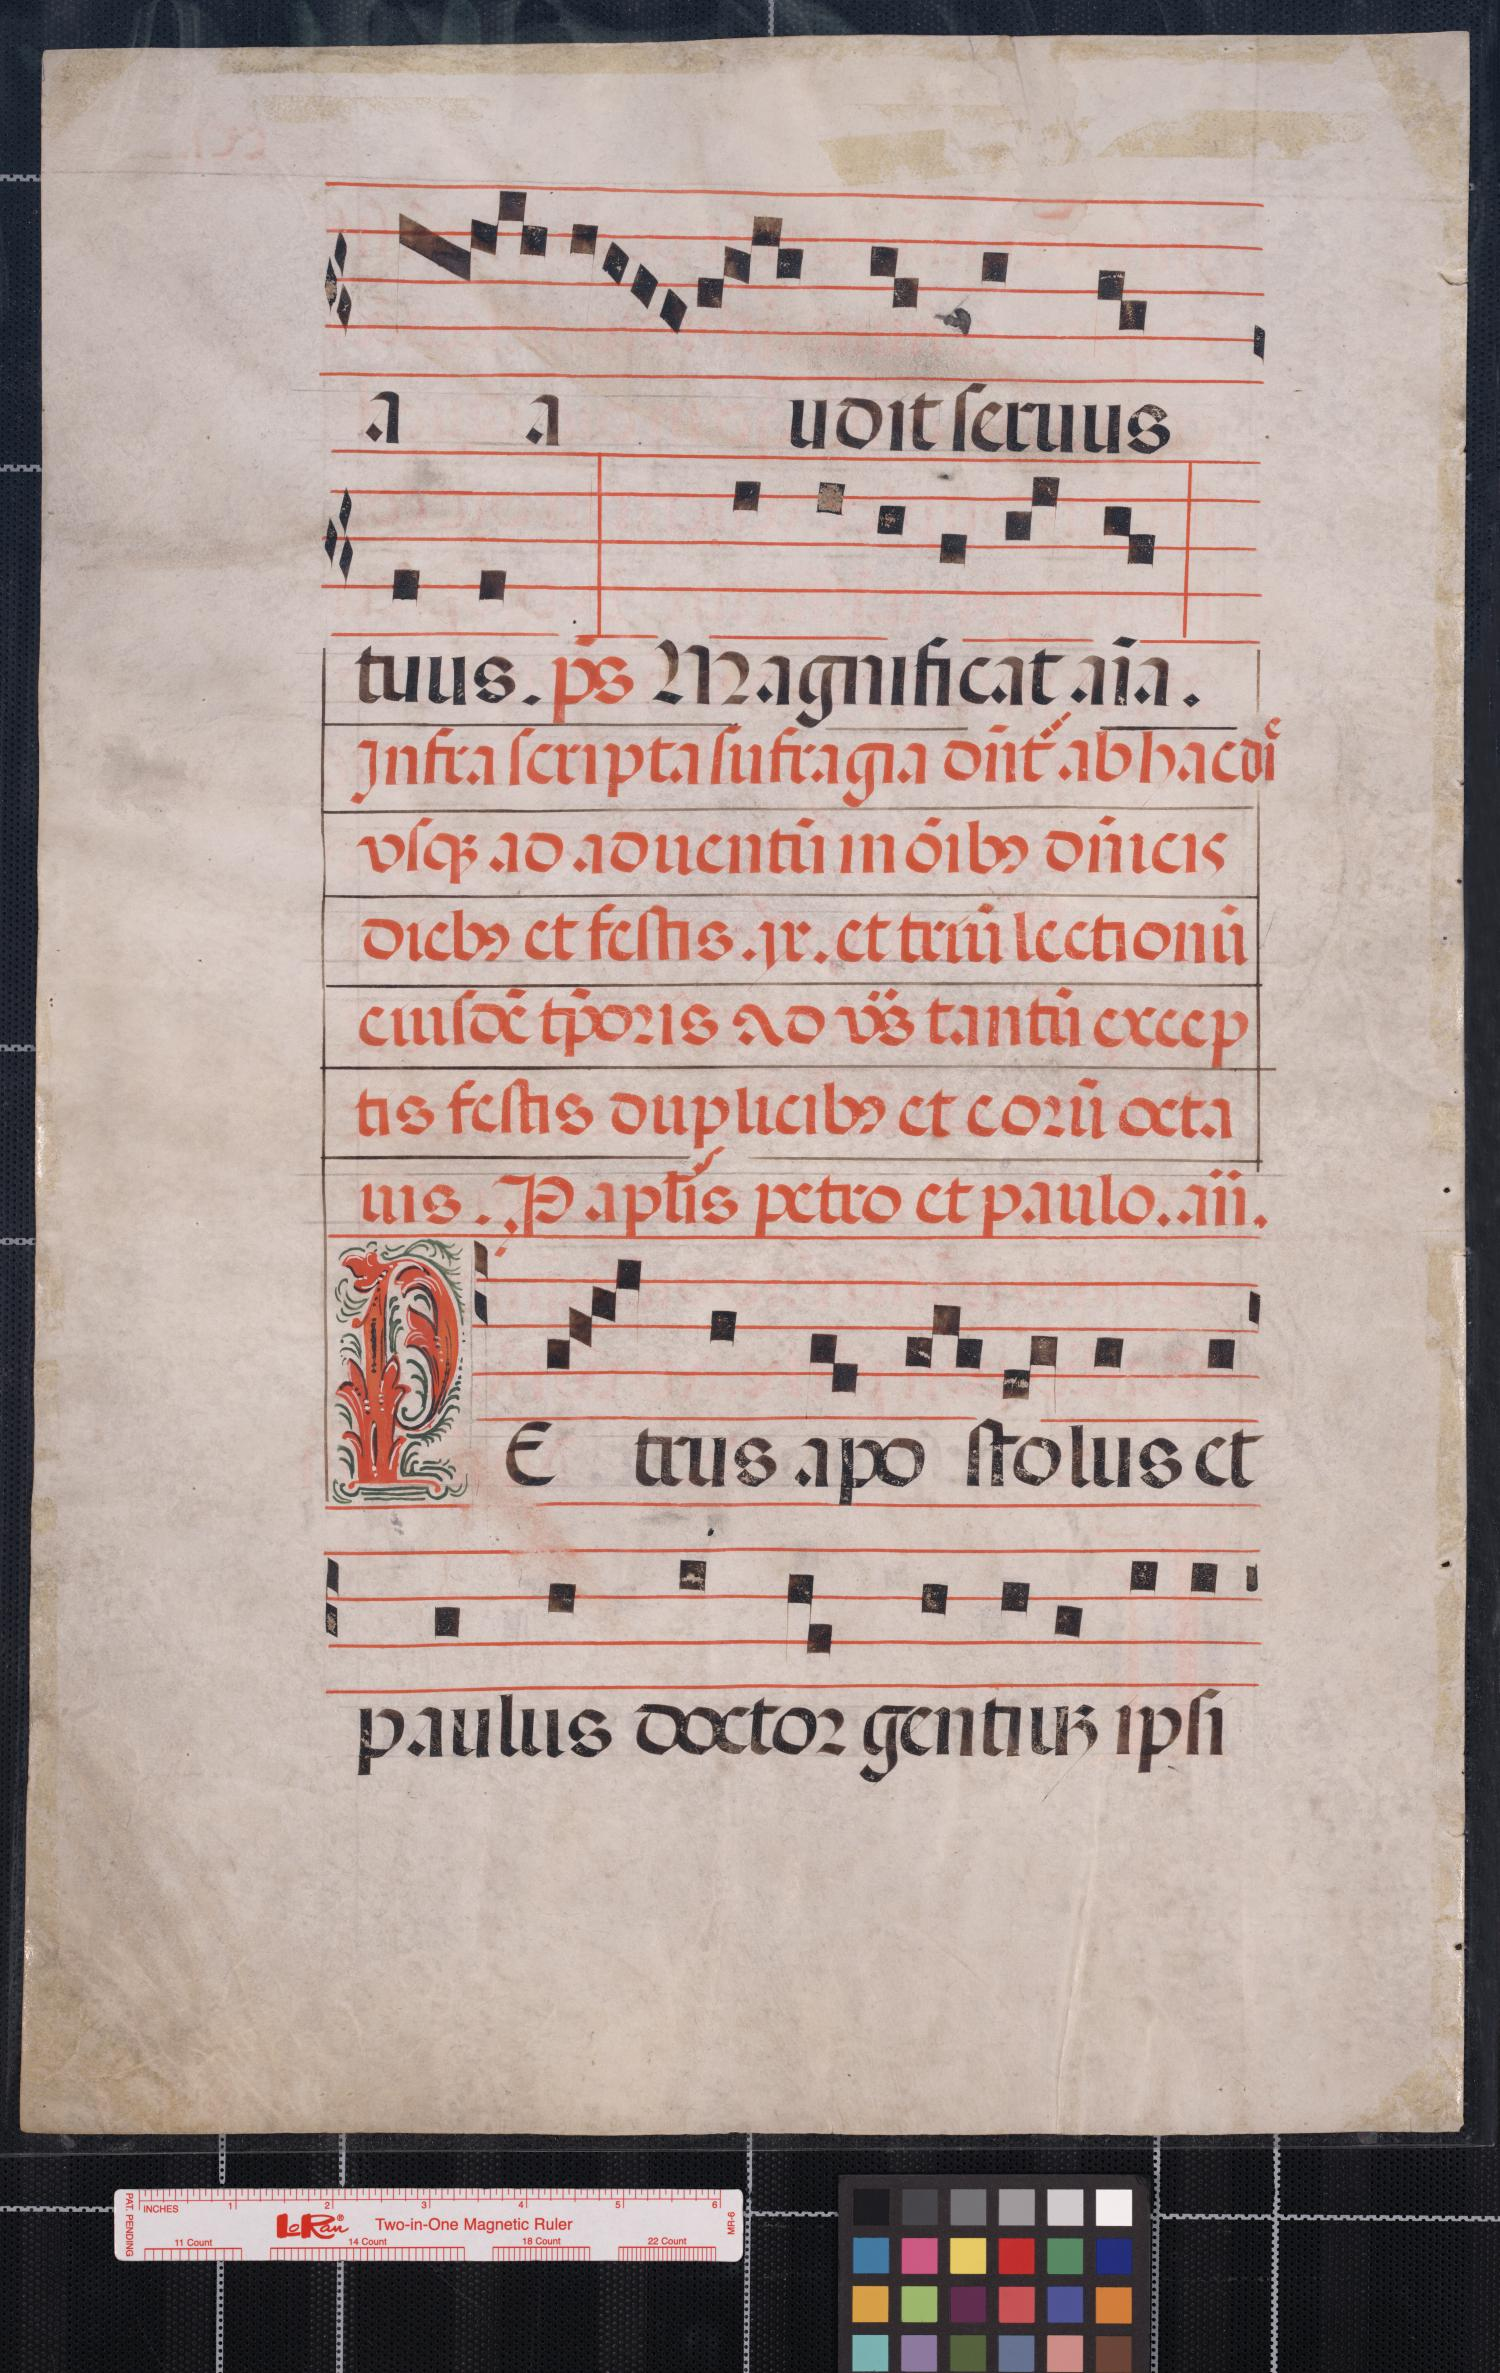 [Manuscript leaf of music]                                                                                                      [Sequence #]: 2 of 2